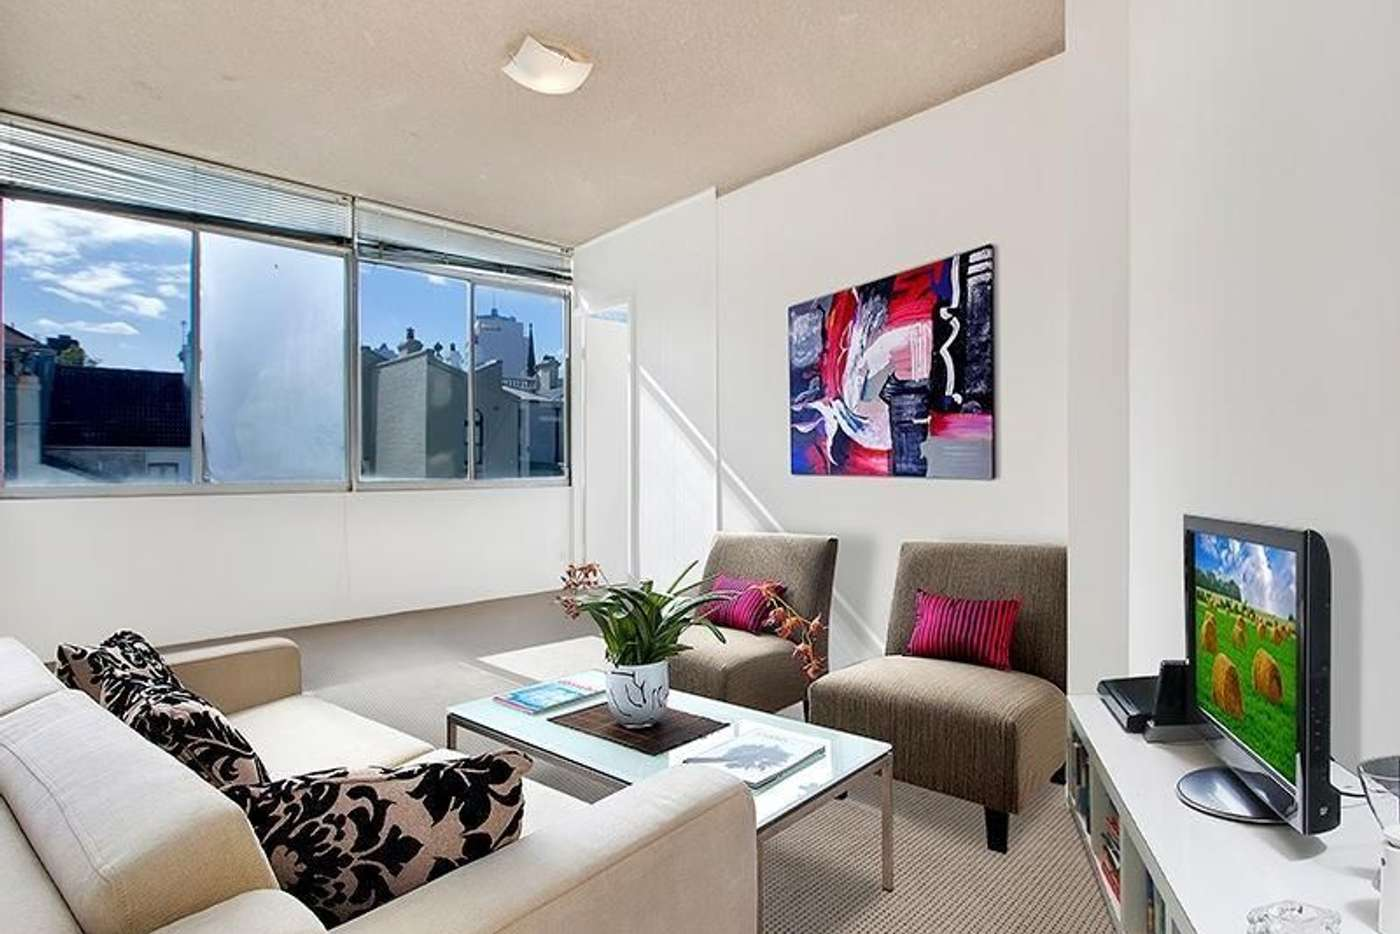 Main view of Homely unit listing, 14/6-14 Darley Street, Darlinghurst NSW 2010